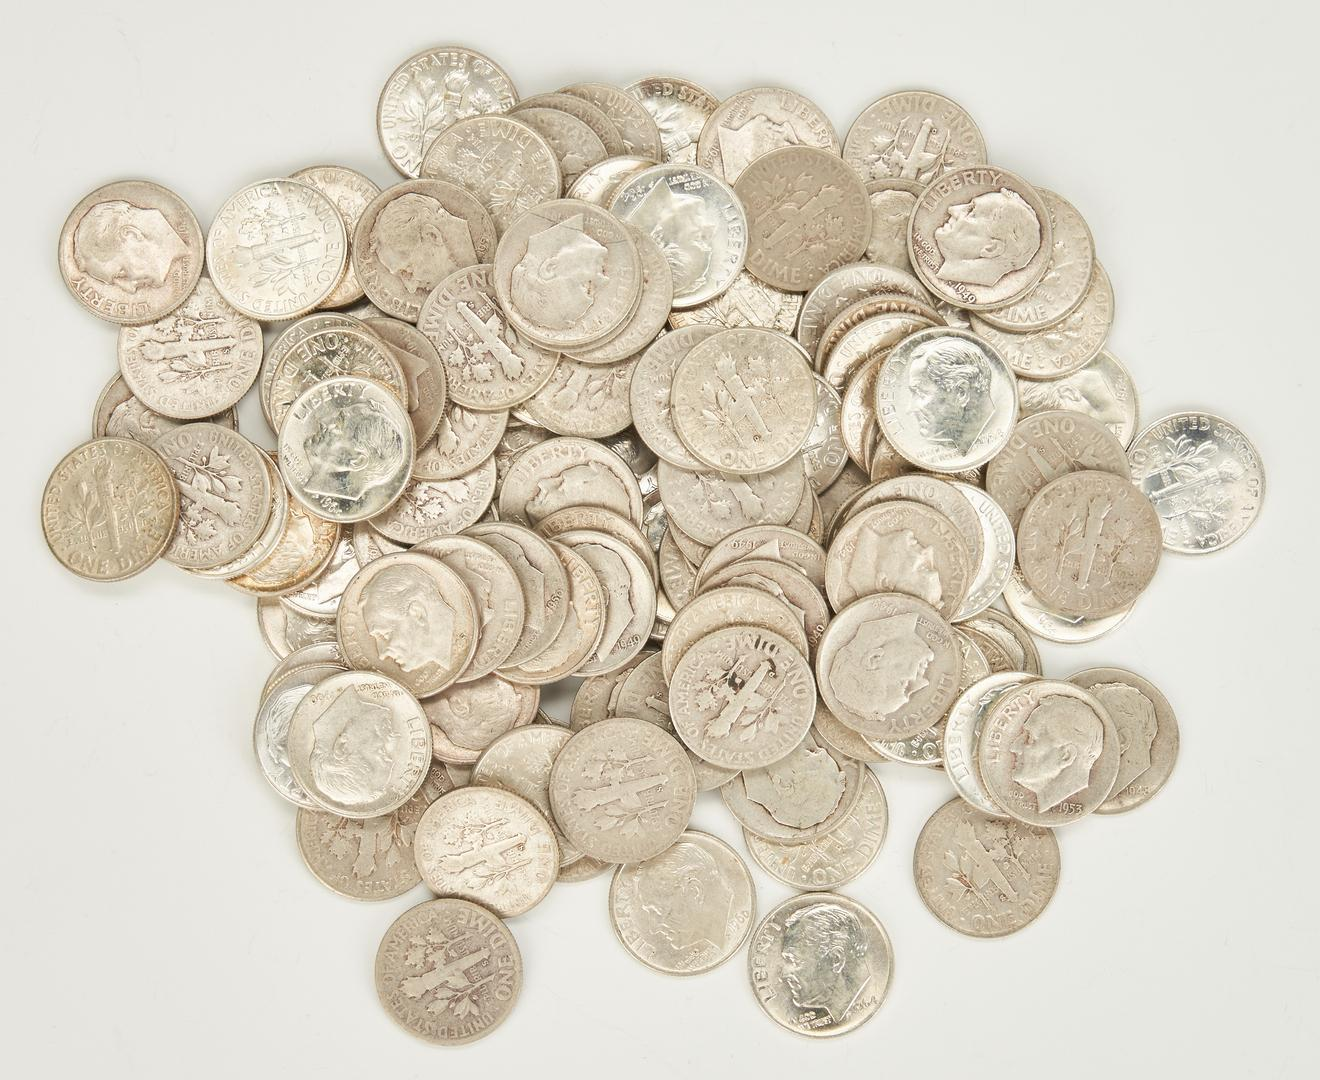 Lot 738: Silver Coin Grouping of 447 items, incl. Dimes, Quarters, and Halves